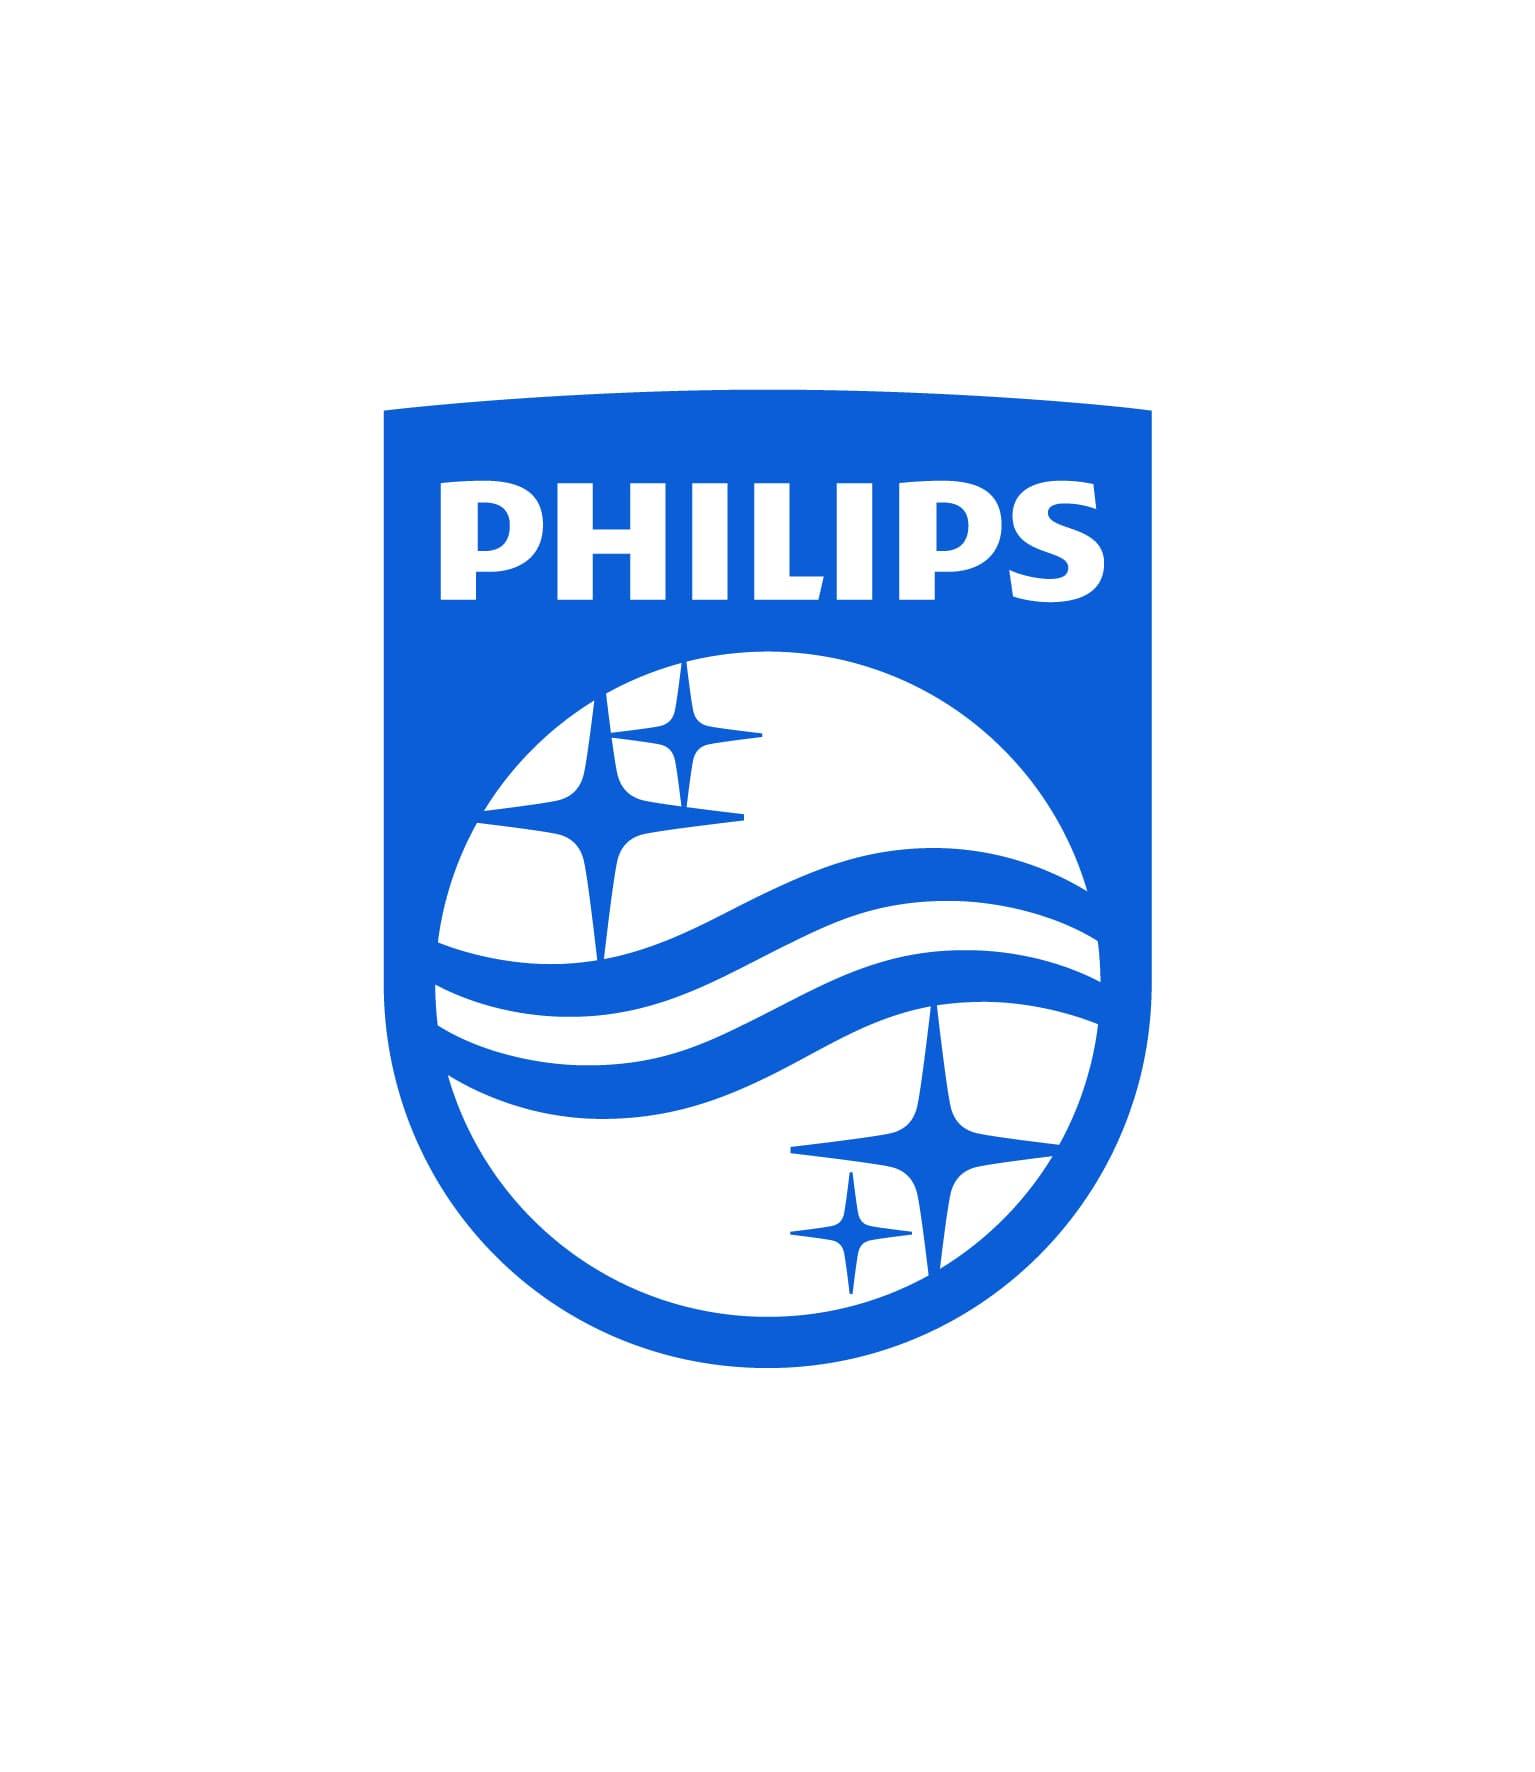 Philips Healthcare Logo - Inside the Philips Brand